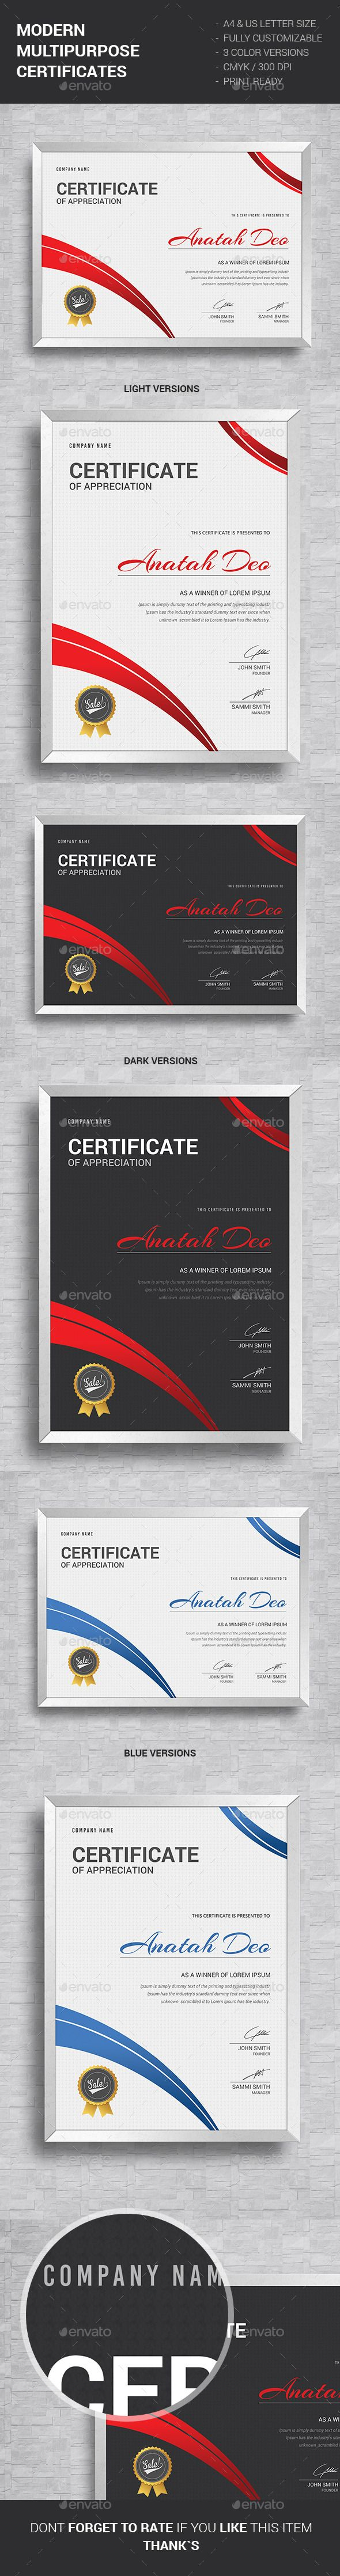 Modern Multipurpose Certificates Template PSD. Download here: http://graphicriver.net/item/modern-multipurpose-certificates/12612801?ref=ksioks